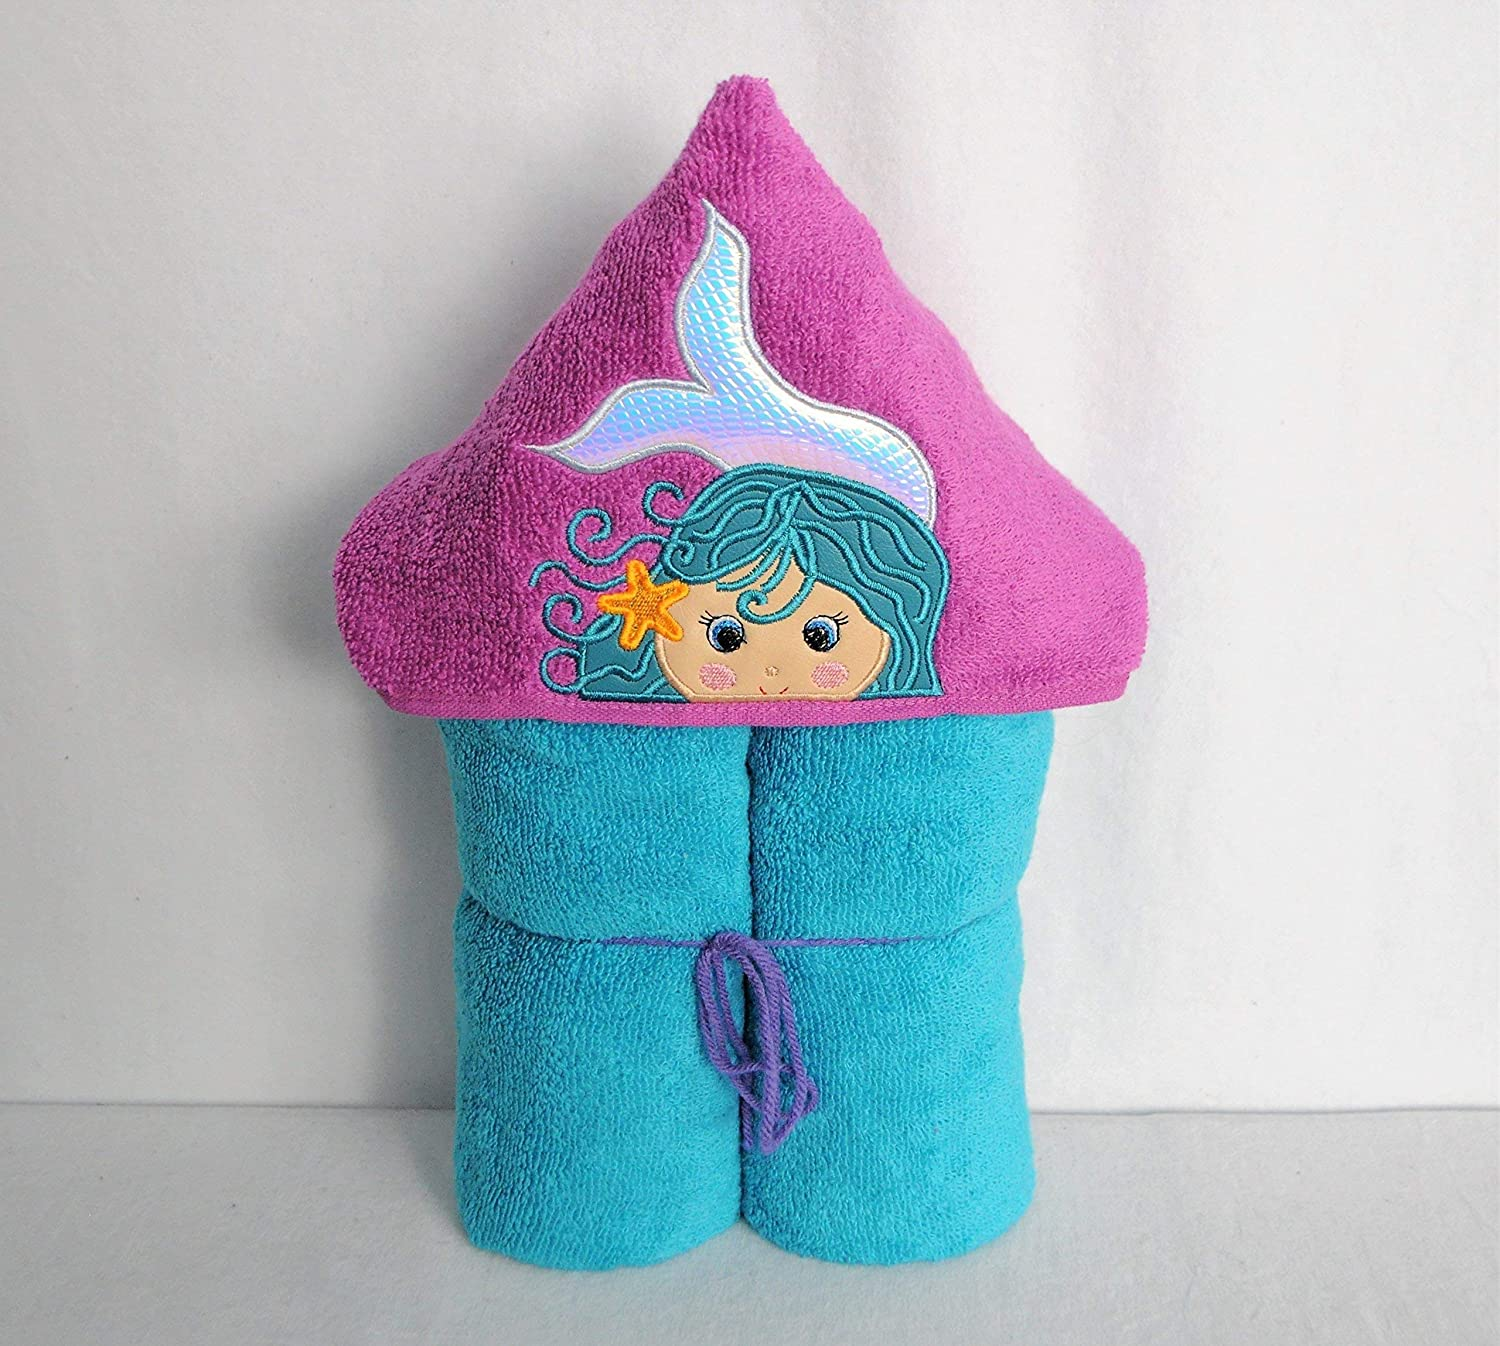 Girl/'s Hooded Towel Baby Shower Gift Embroidered Towel Children/'s Bath Accessory Birthday Presents for Girls Pop Culture Swim